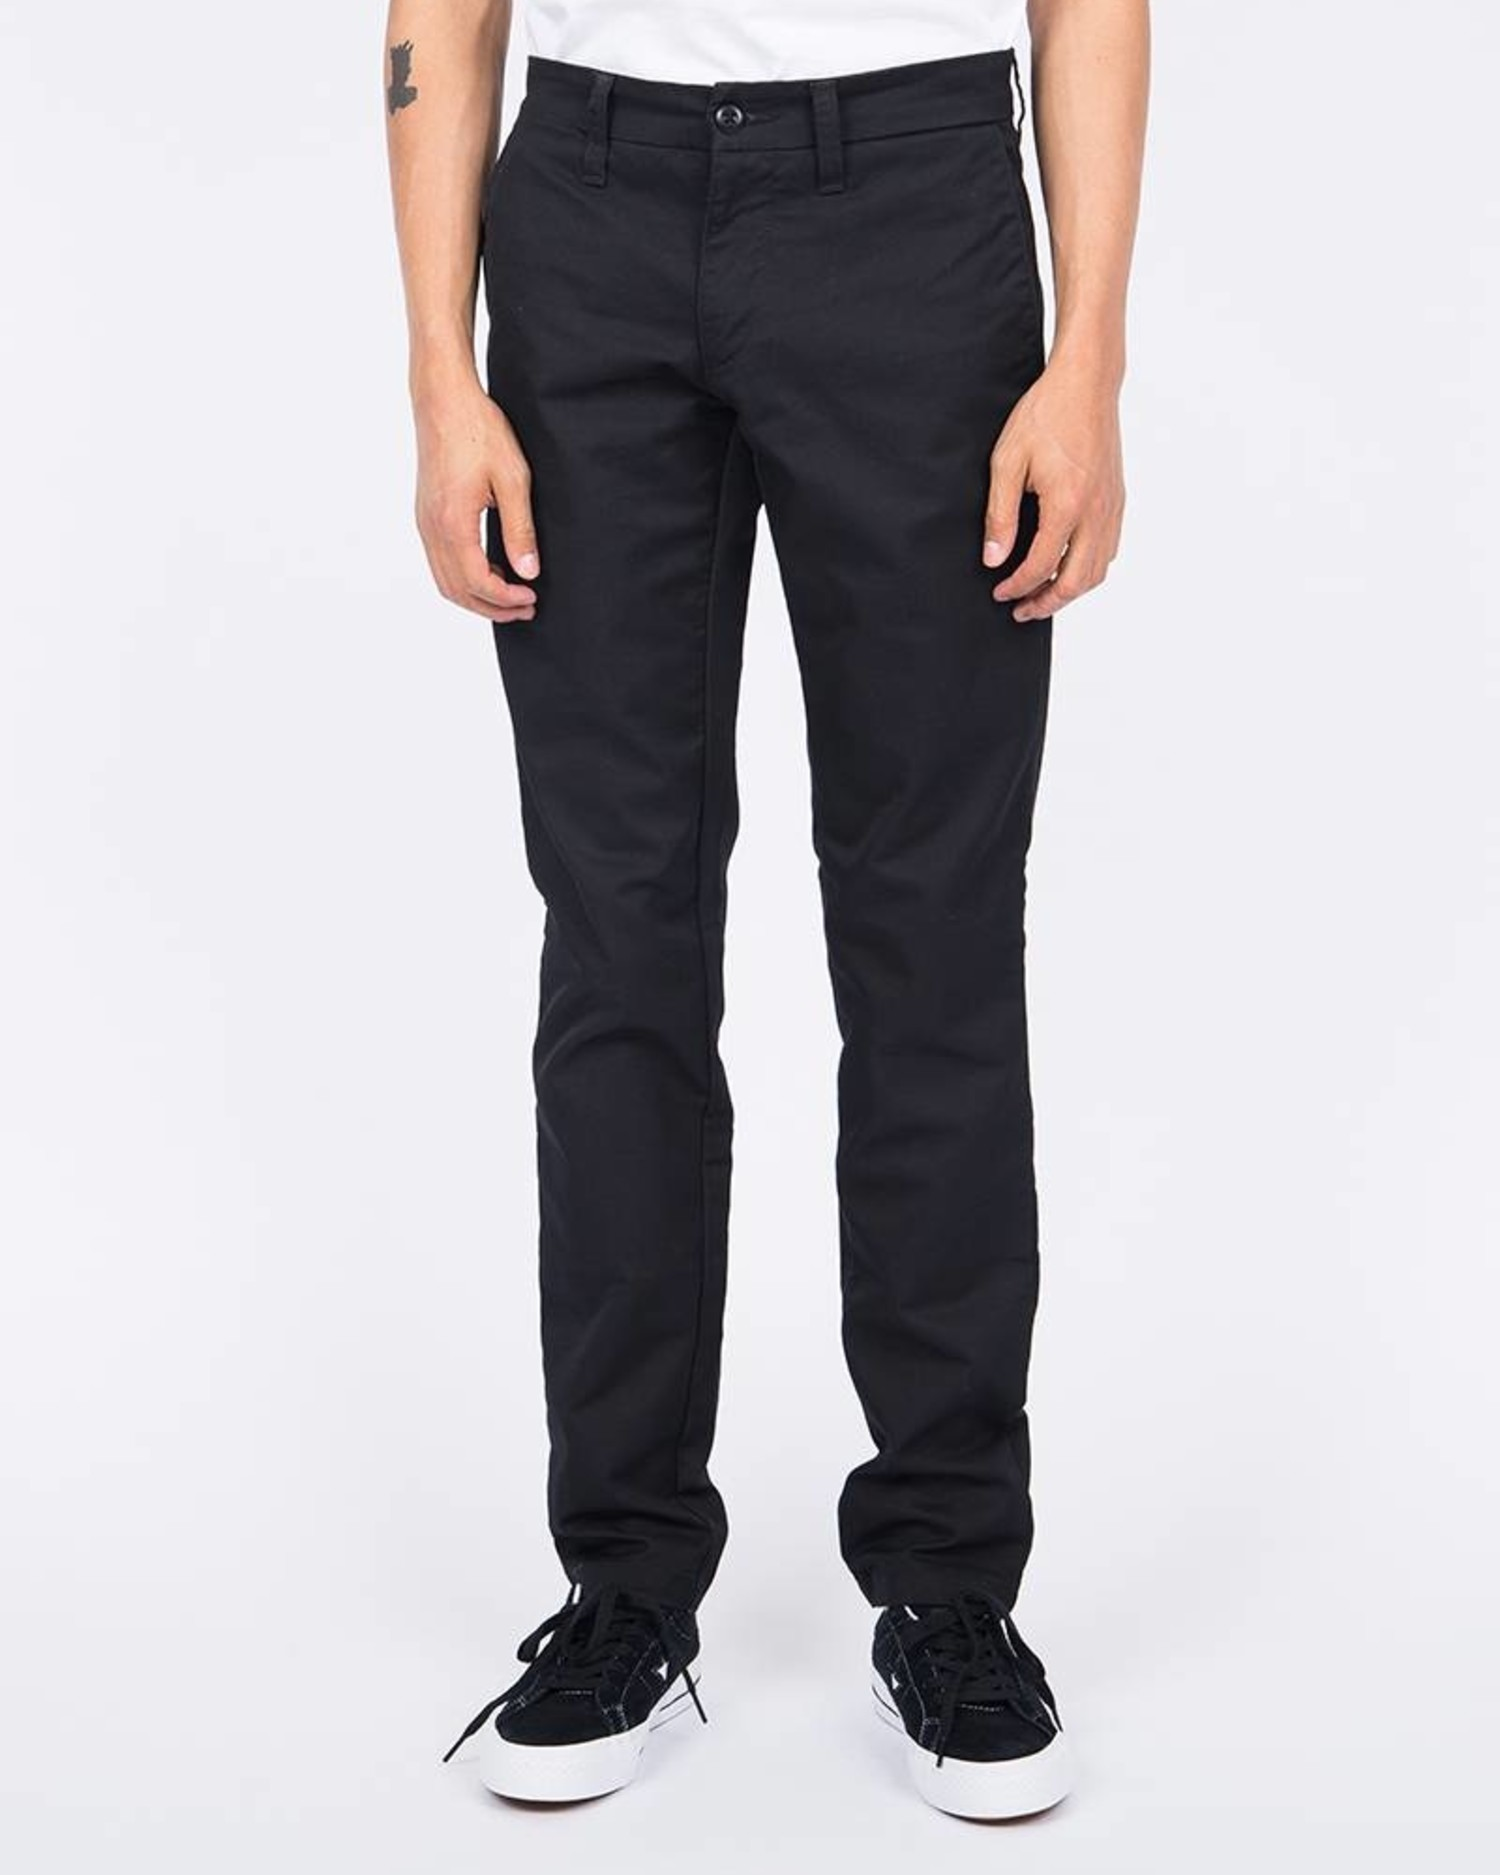 Carhartt Sid Pants Black Rinsed